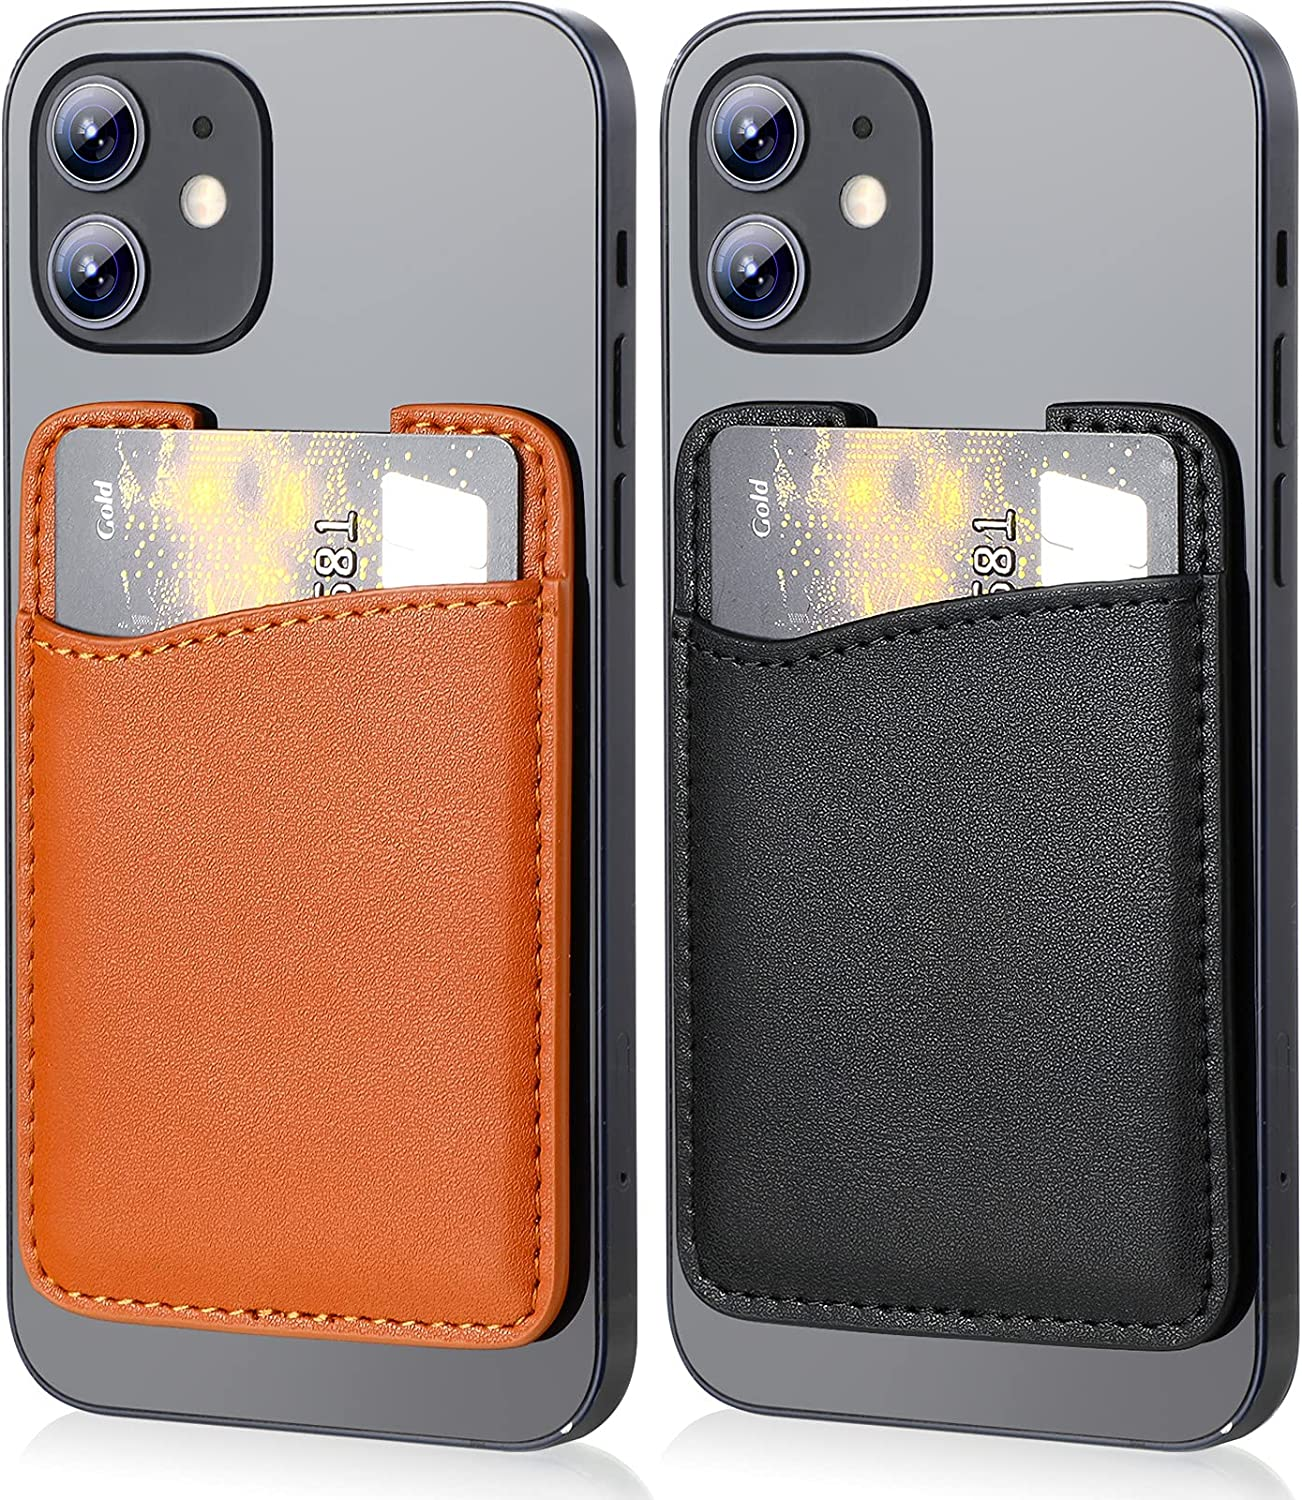 2 Pieces Genuine Leather Phone Card Holder Stick On Credit Card Sleeves Stick on Phone Card Pocket Holder Wallet Cell Phone Card Pocket Card Pouch Sleeve for Phone and Most Smartphones (Black, Brown)